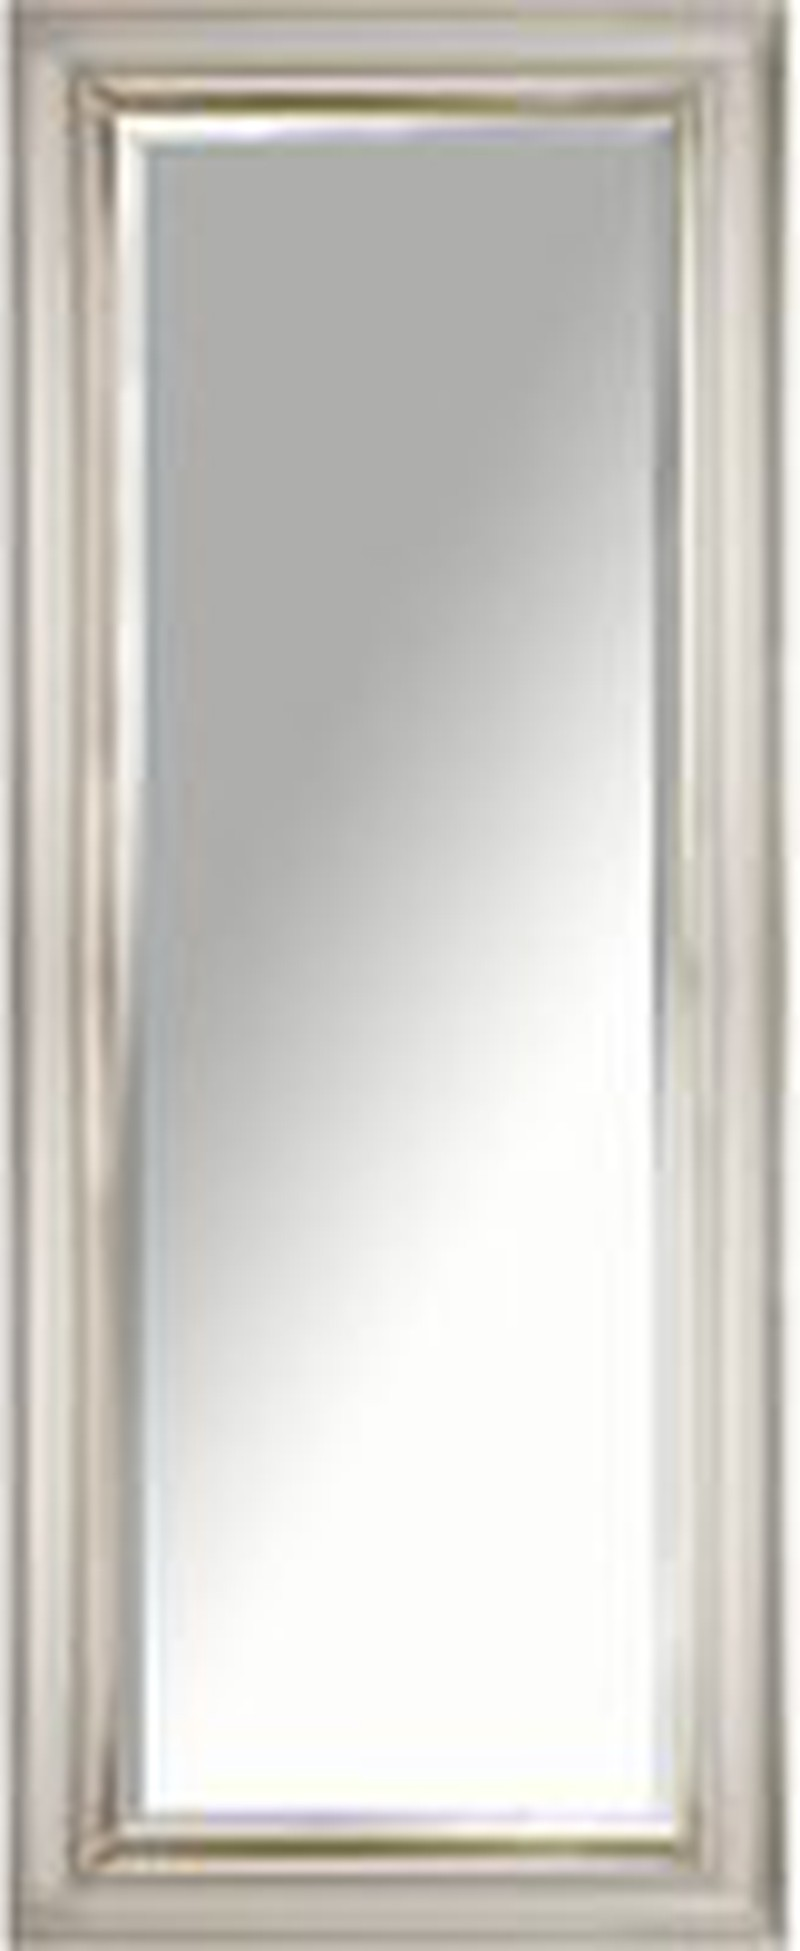 John Lewis & Partners Gold Line Bevelled Mirror, 135 x 55cm, Gold/Taupe -